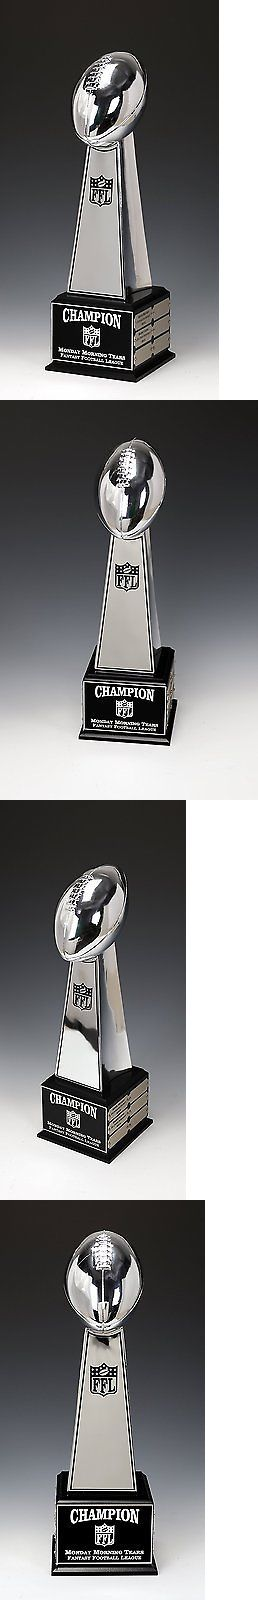 Other Football 2024: Fantasy Football Chrome Perpetual Trophy Lombardi 12 Year 19 Tall Quick Ship -> BUY IT NOW ONLY: $139.9 on eBay!